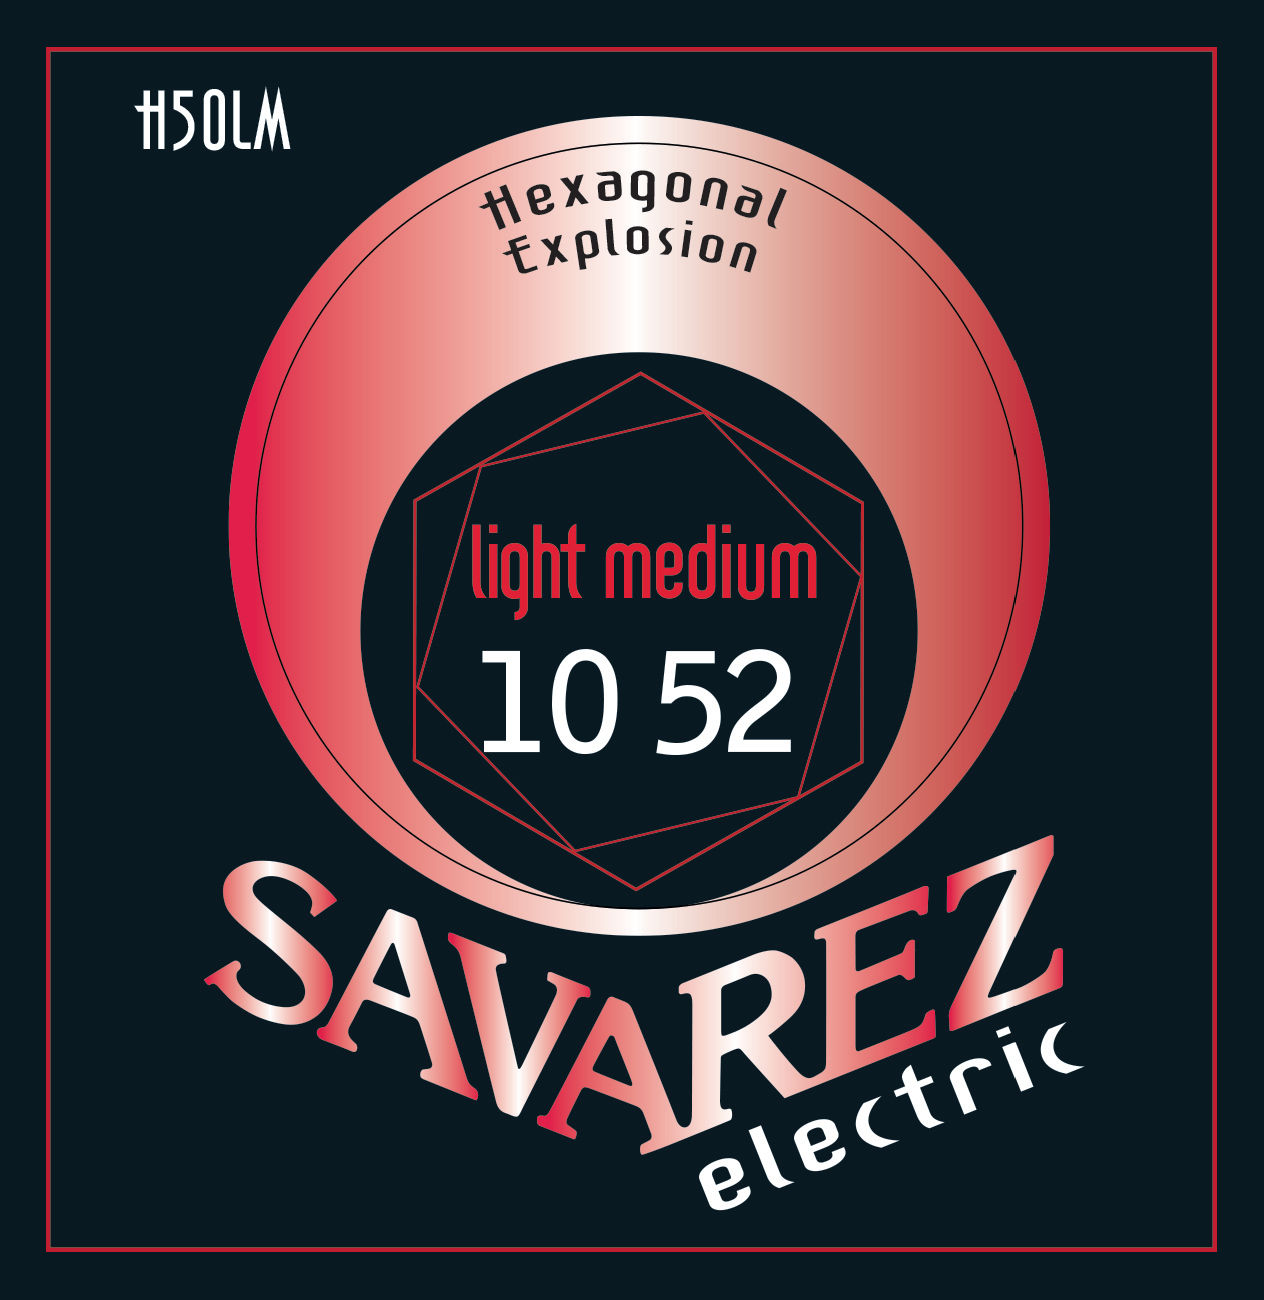 SAVAREZ ELECTRIC HEXAGONAL EXPLOSION H50LM